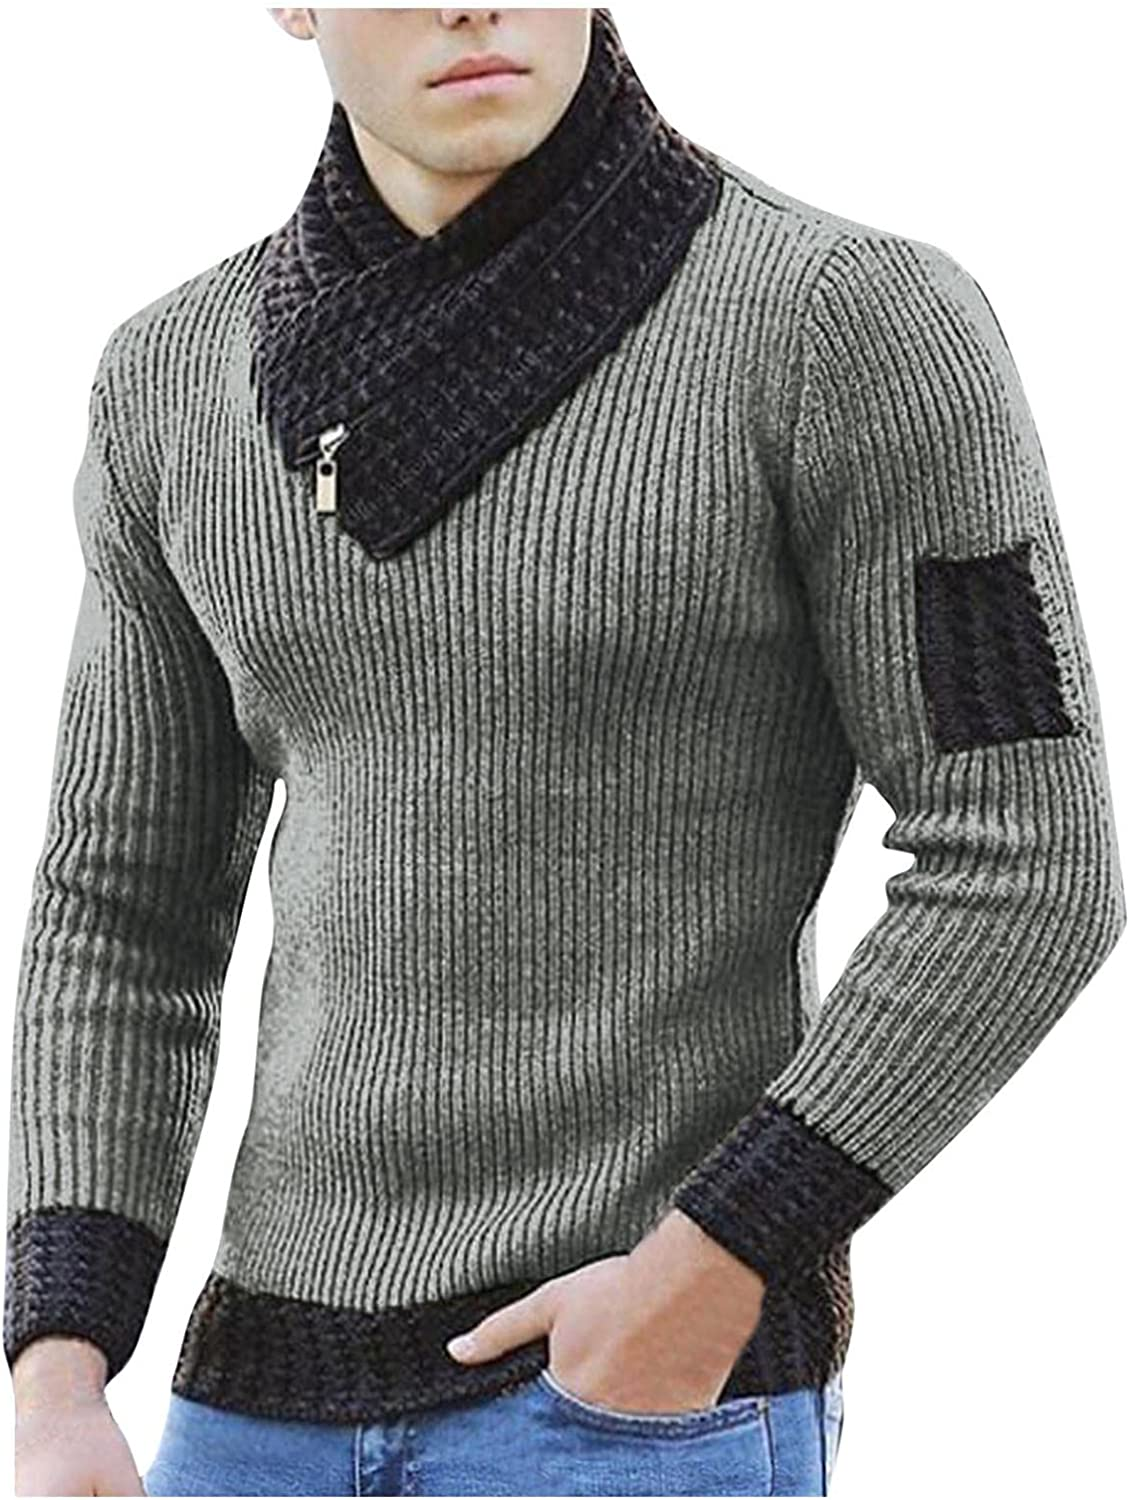 Mens Scarf High Collar Sweater Pullover Long Sleeve Knitted Sweatershirts Slim Fit Lightweight Turtleneck Top Blouse